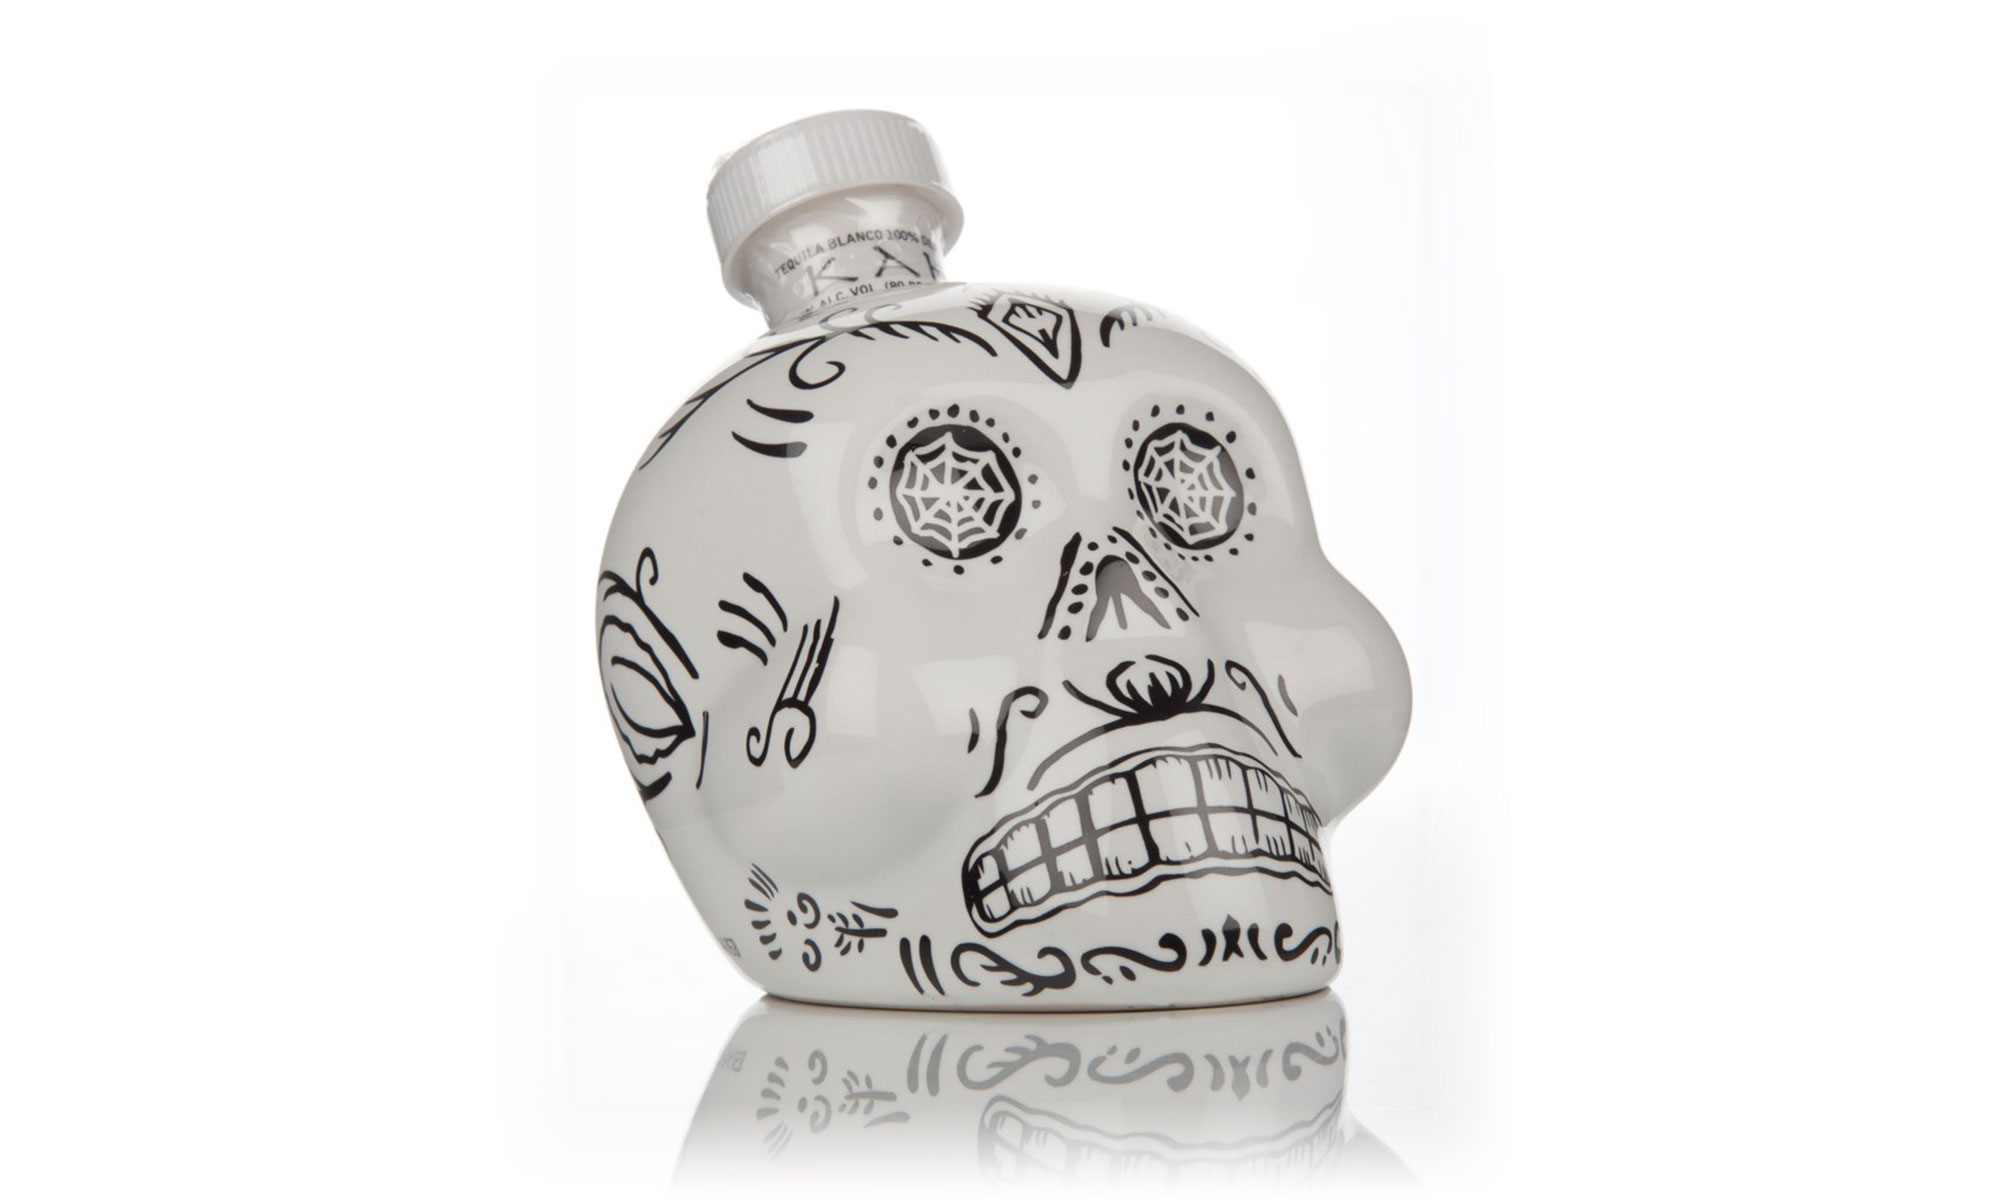 Thirsty for a Terrific Tequila